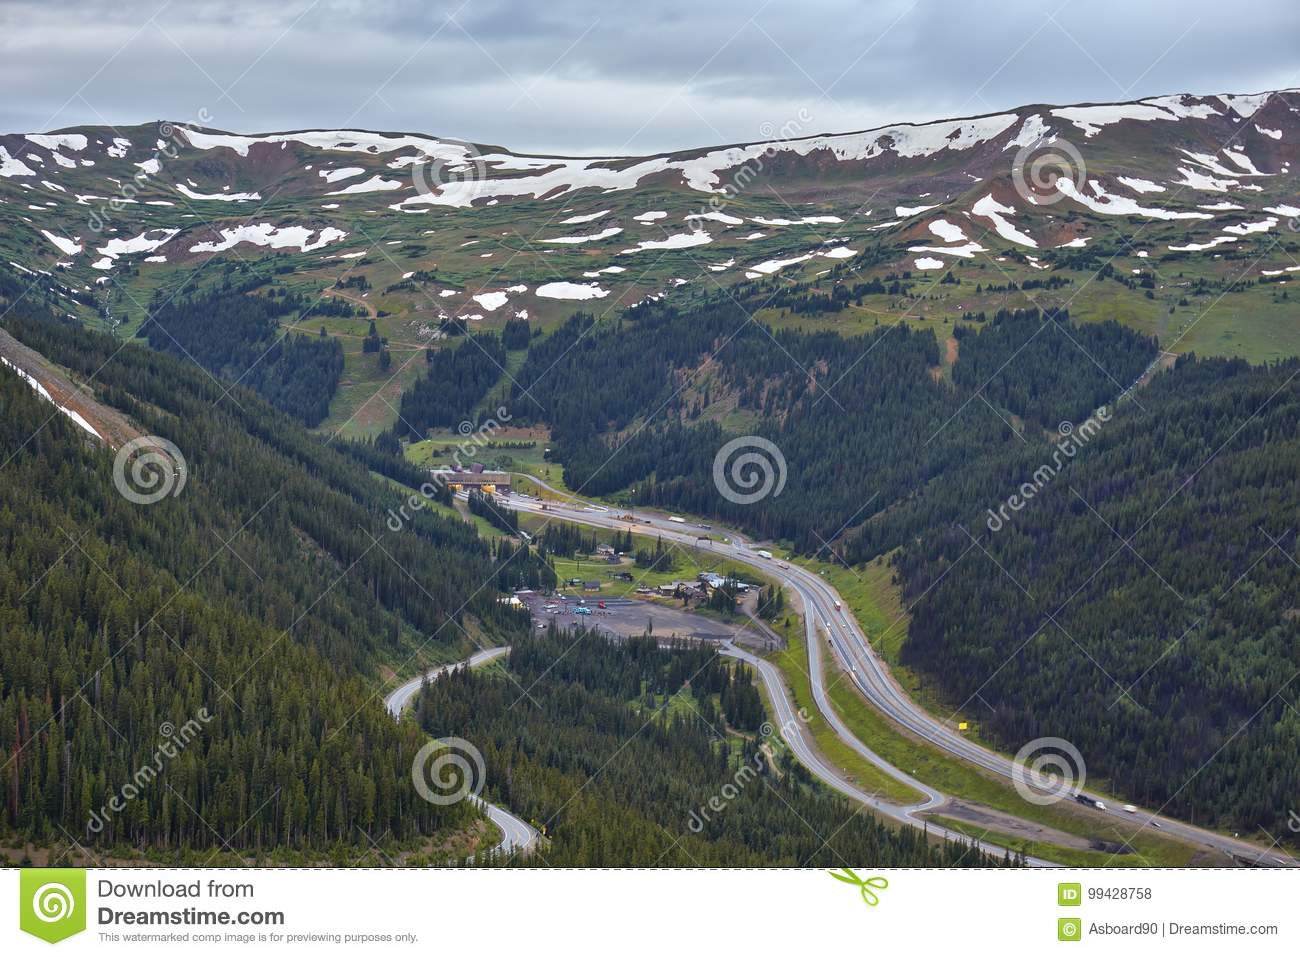 Eisenhower Tunnel and I-70 in Colorado